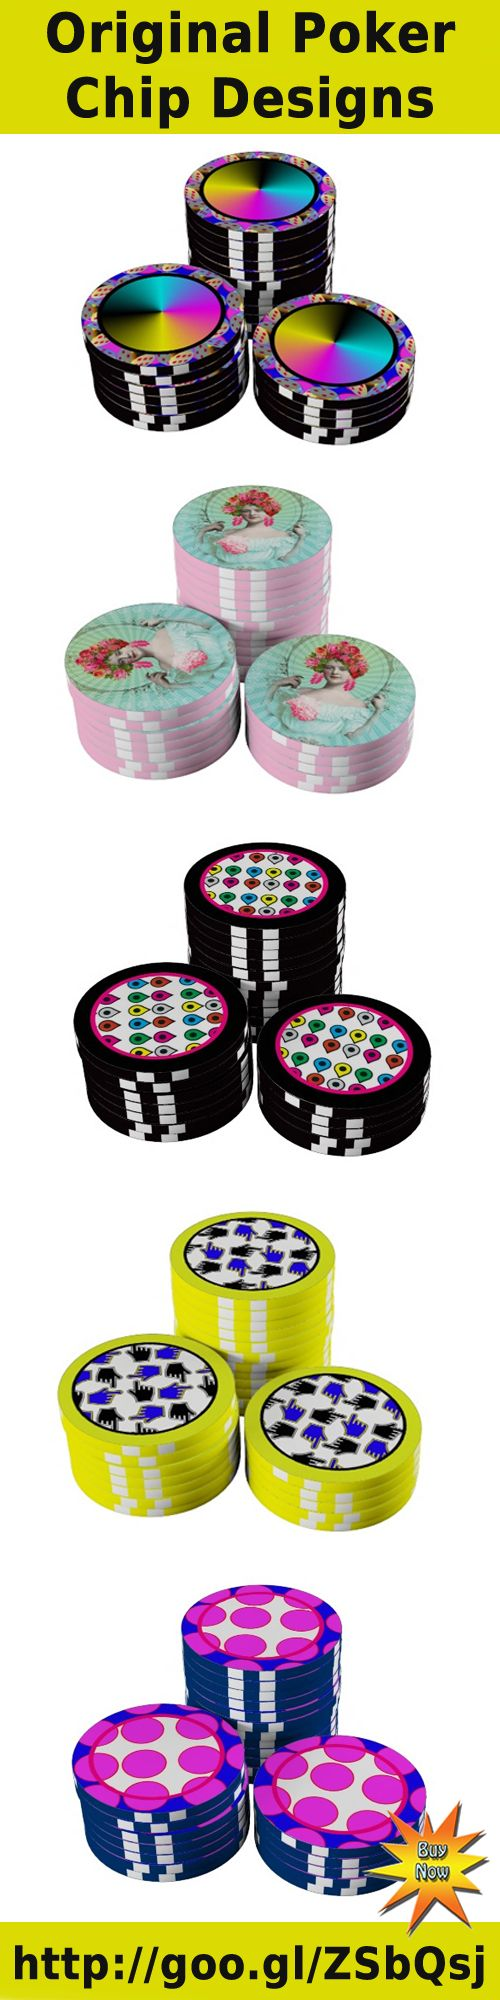 Zazzle t shirt design template - Original Poker Chip Design Templates Just Easily Add Your Own Dollar Amounts To The